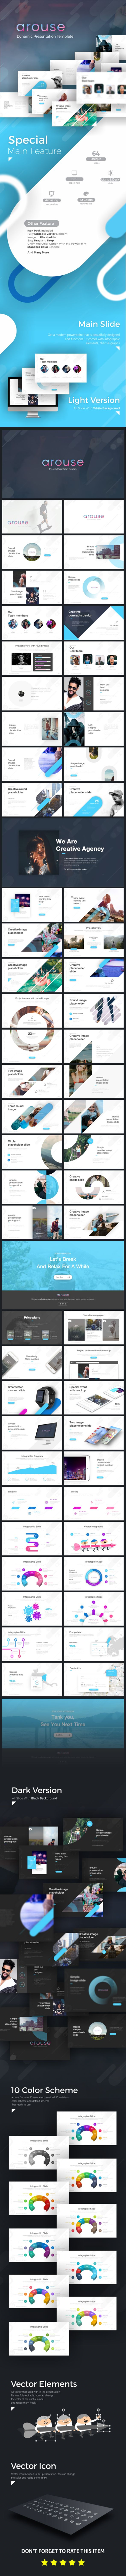 Arouse Dynamic Presentation Template - #Business #PowerPoint Templates Download here: https://graphicriver.net/item/arouse-dynamic-presentation-template/19703867?ref=alena994